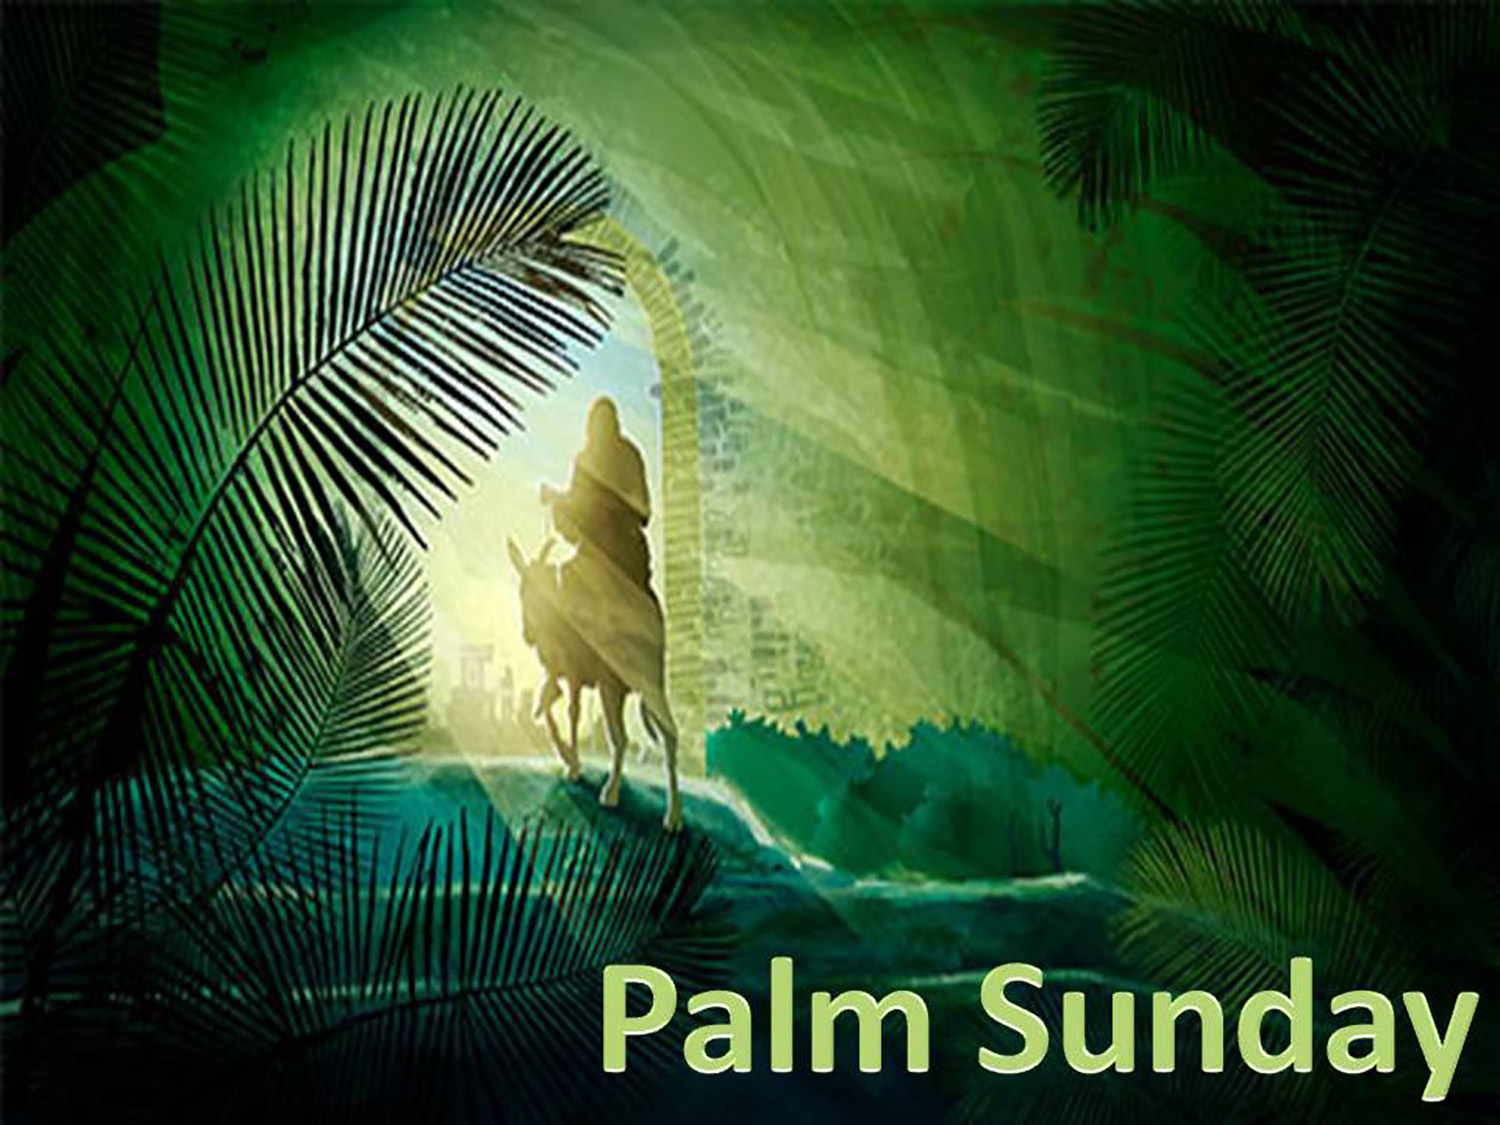 Palm Sunday image for website